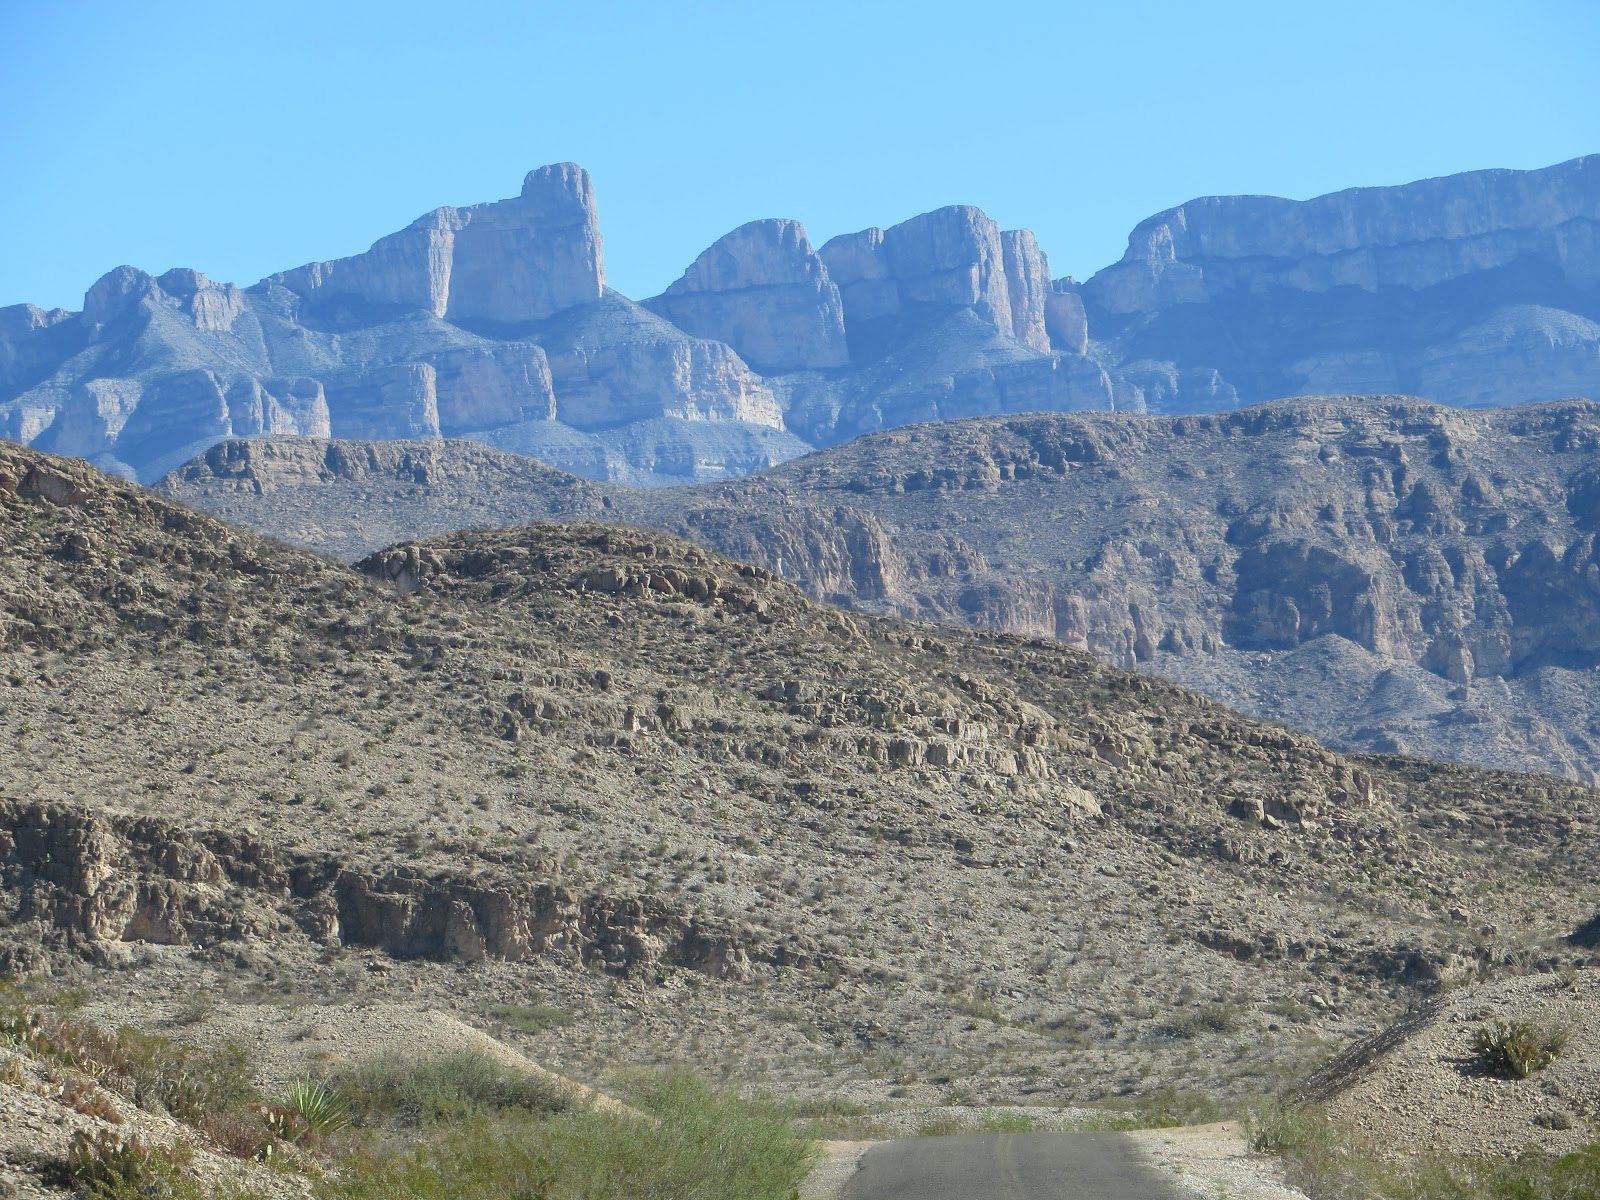 big bend national park asian singles Big bend national park is a united states national park located in west texas, bordering mexico it has national significance as the largest protected area of.